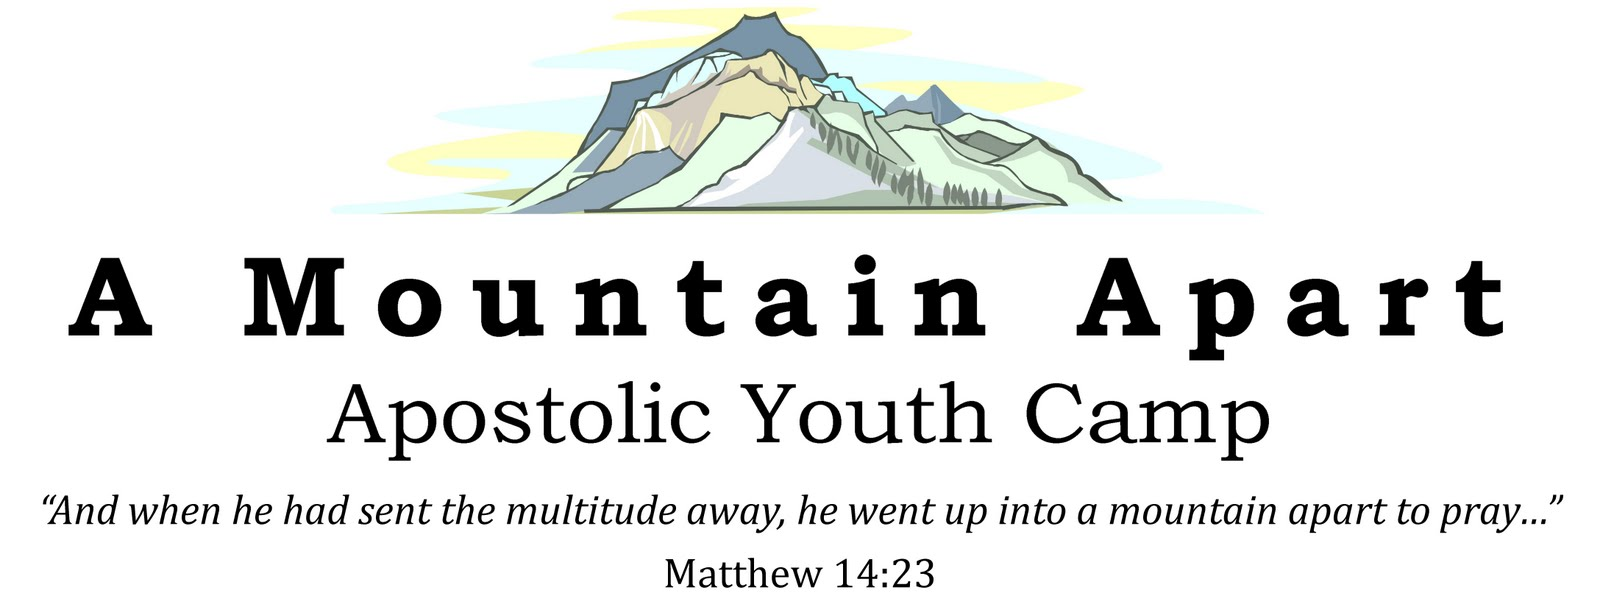 """A Mountain Apart"" Apostolic Youth Camp"